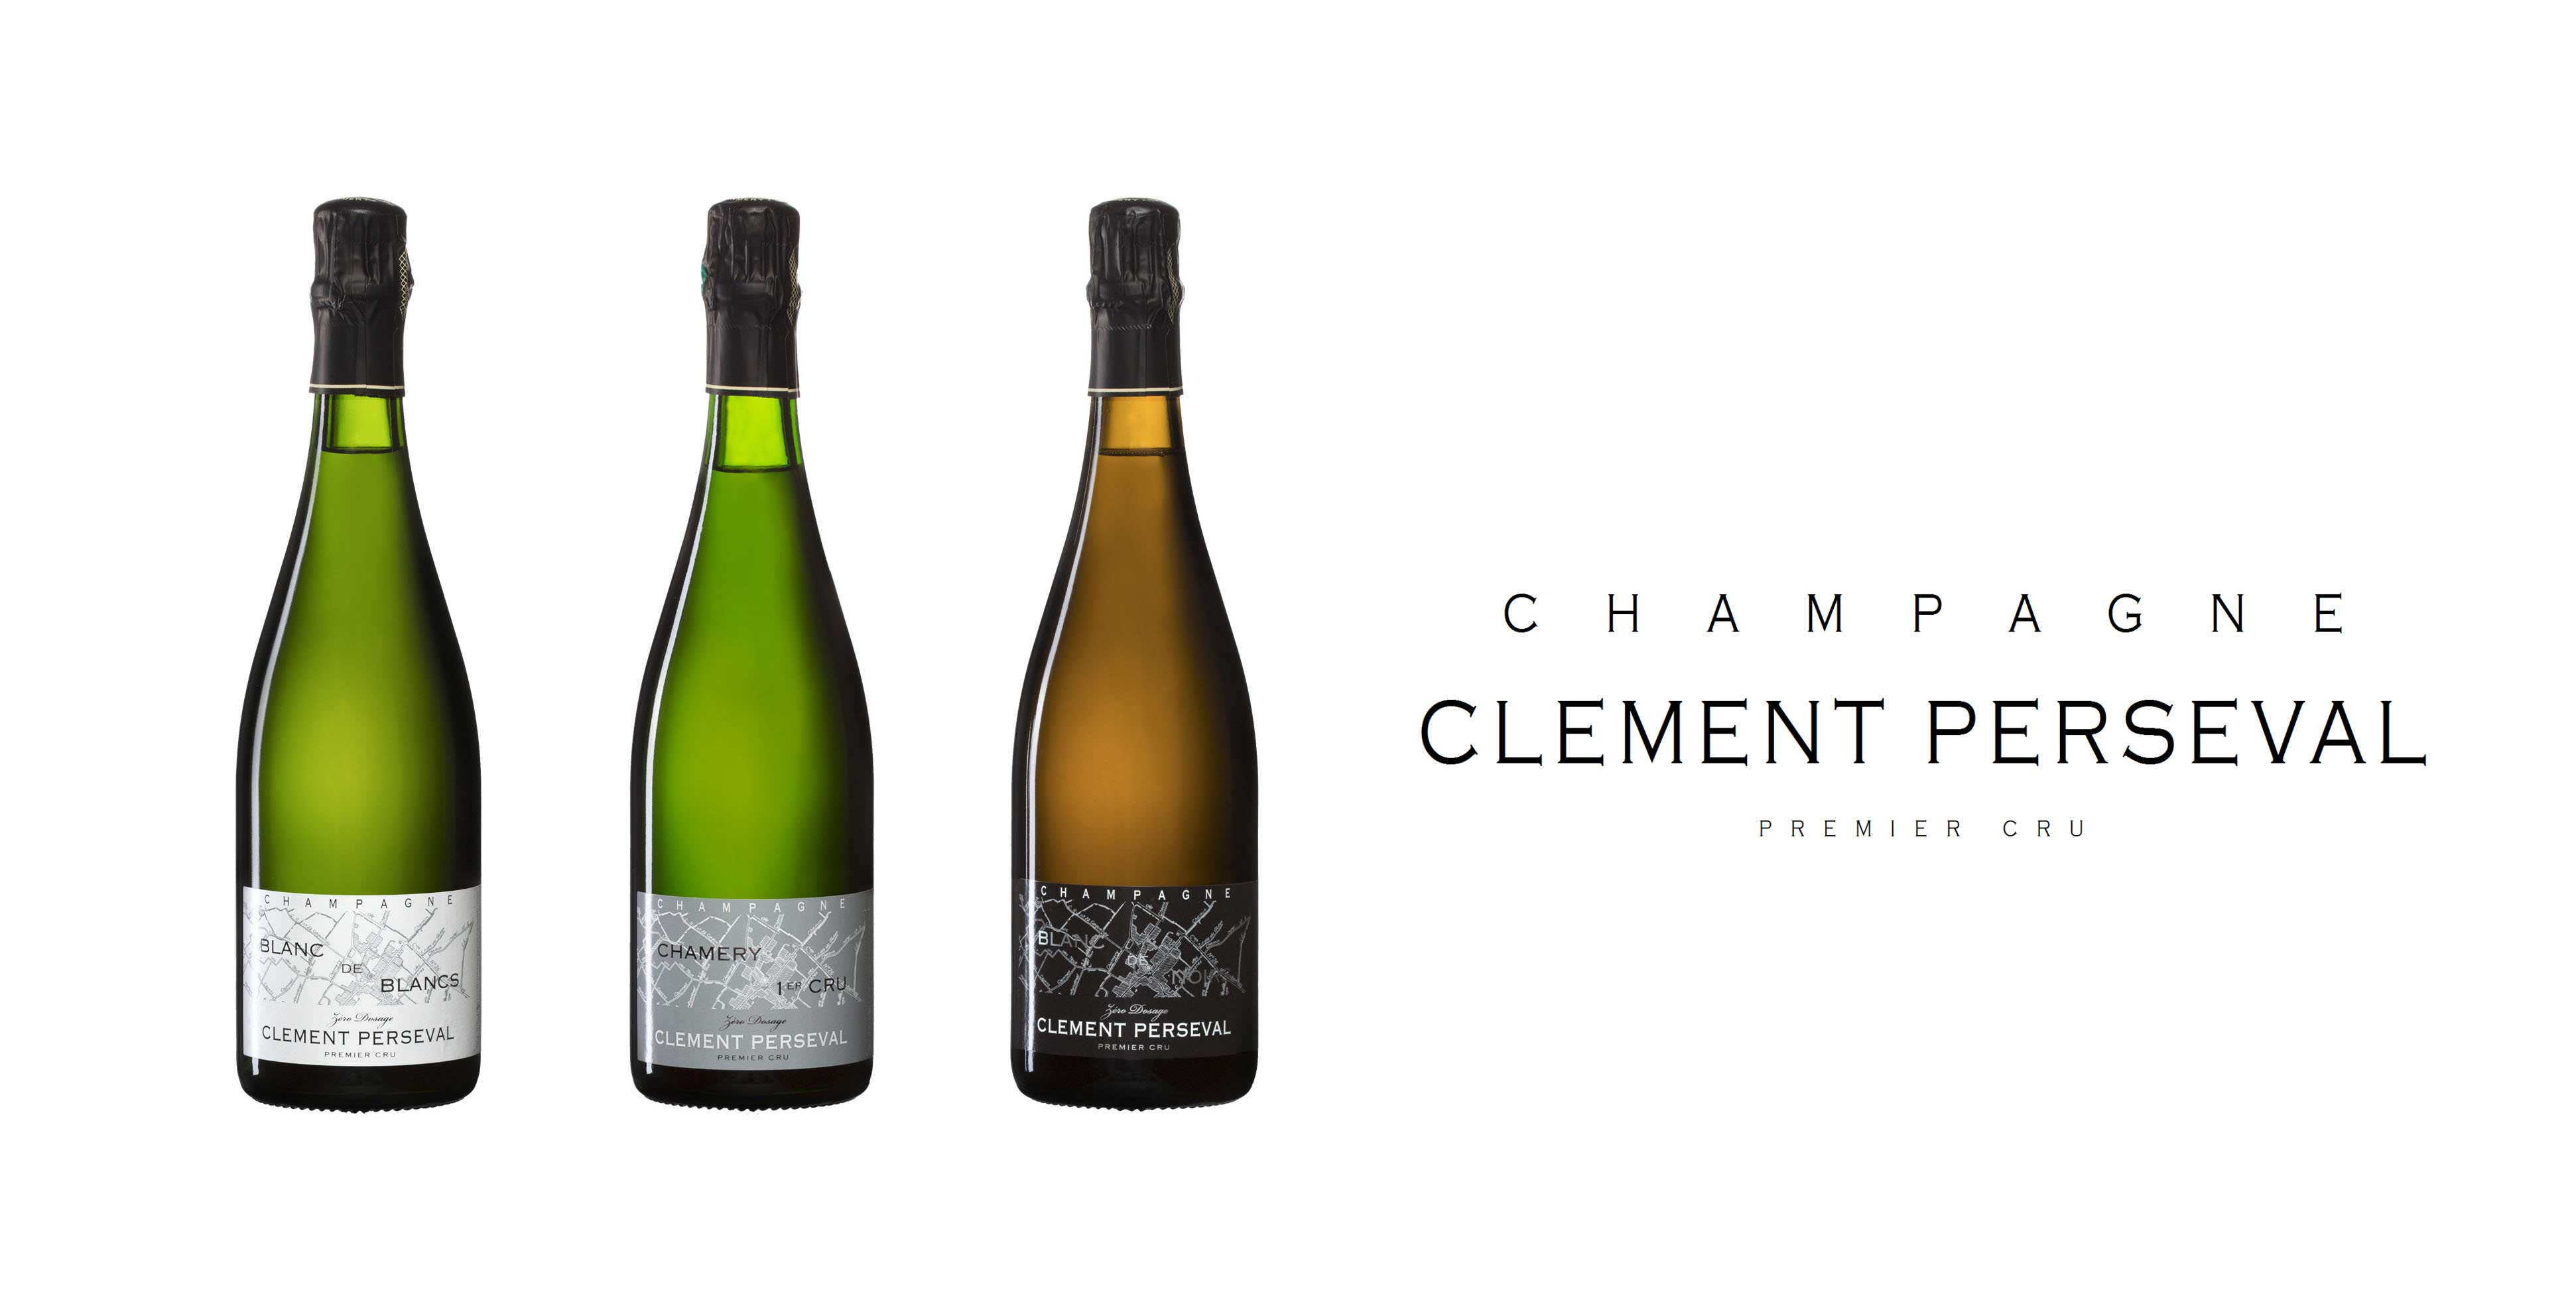 Champagne Clement Perseval